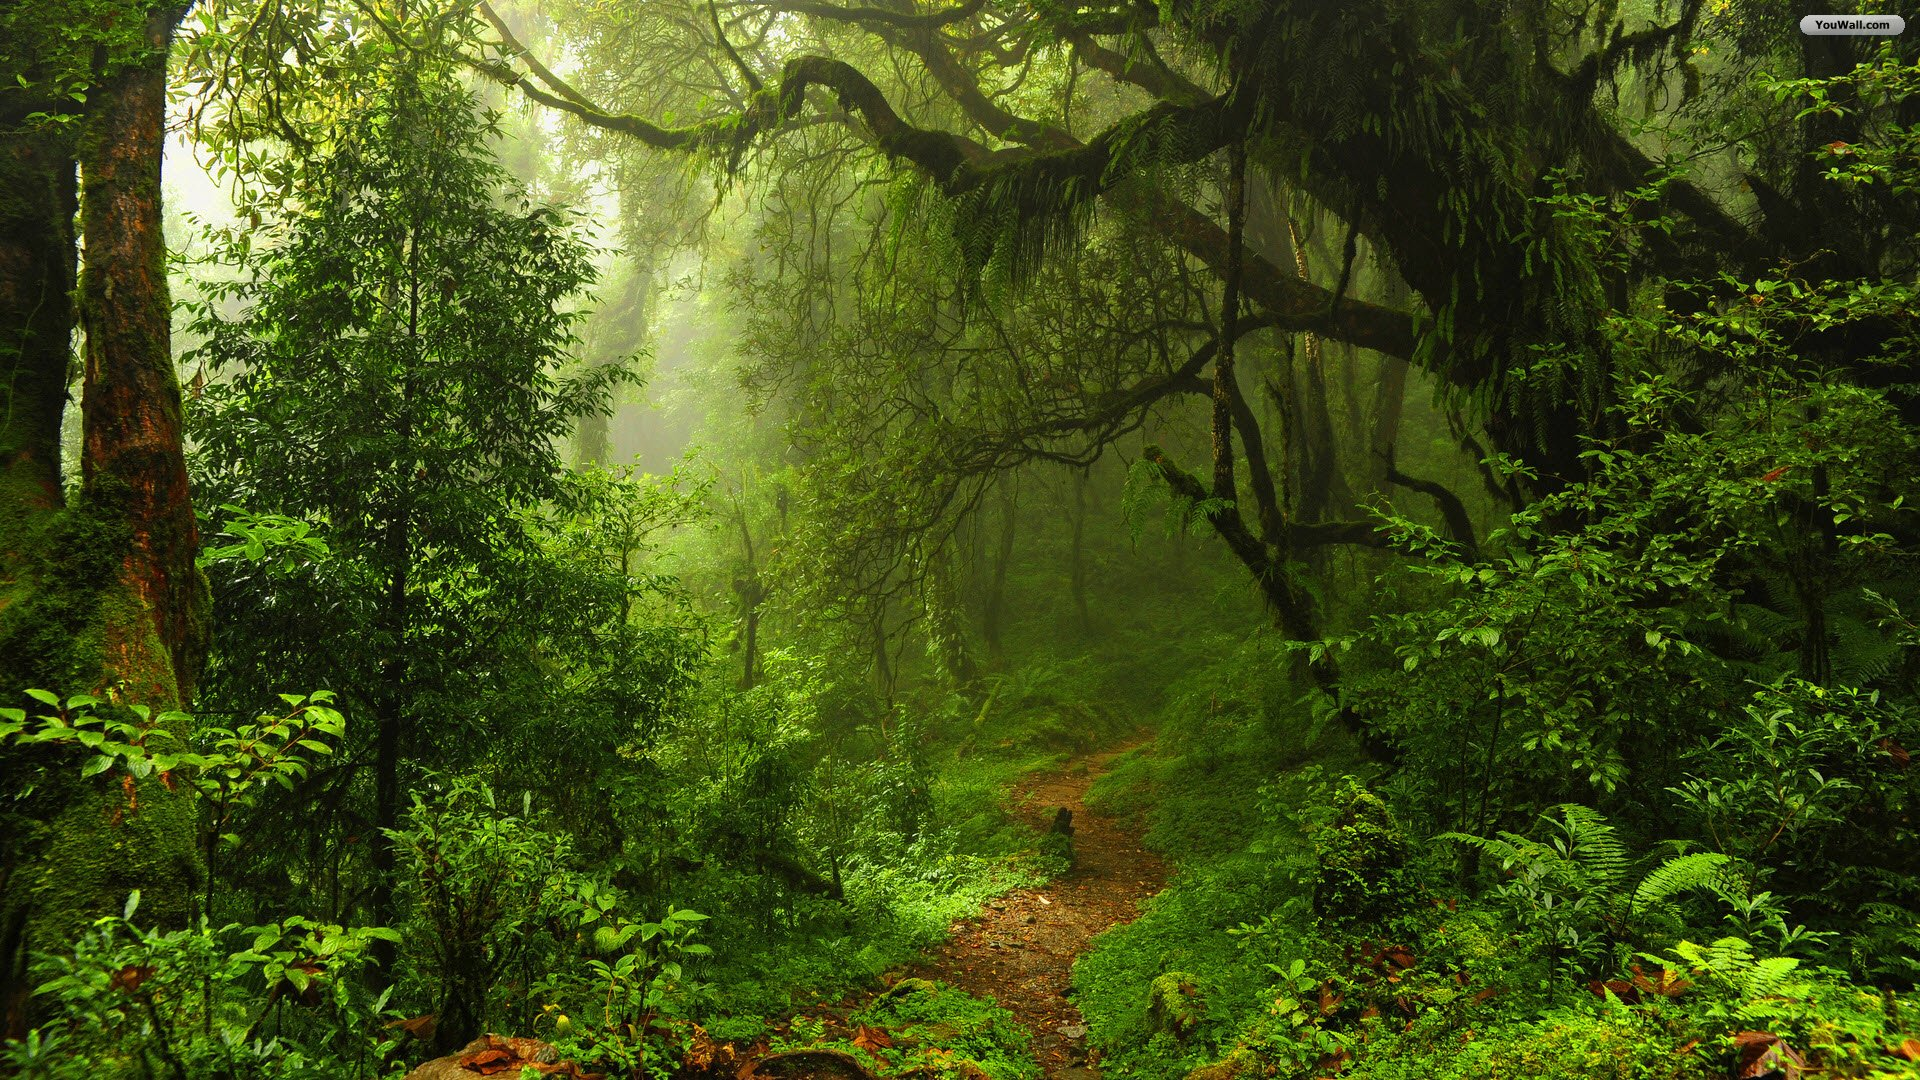 Related image of forest ISFC